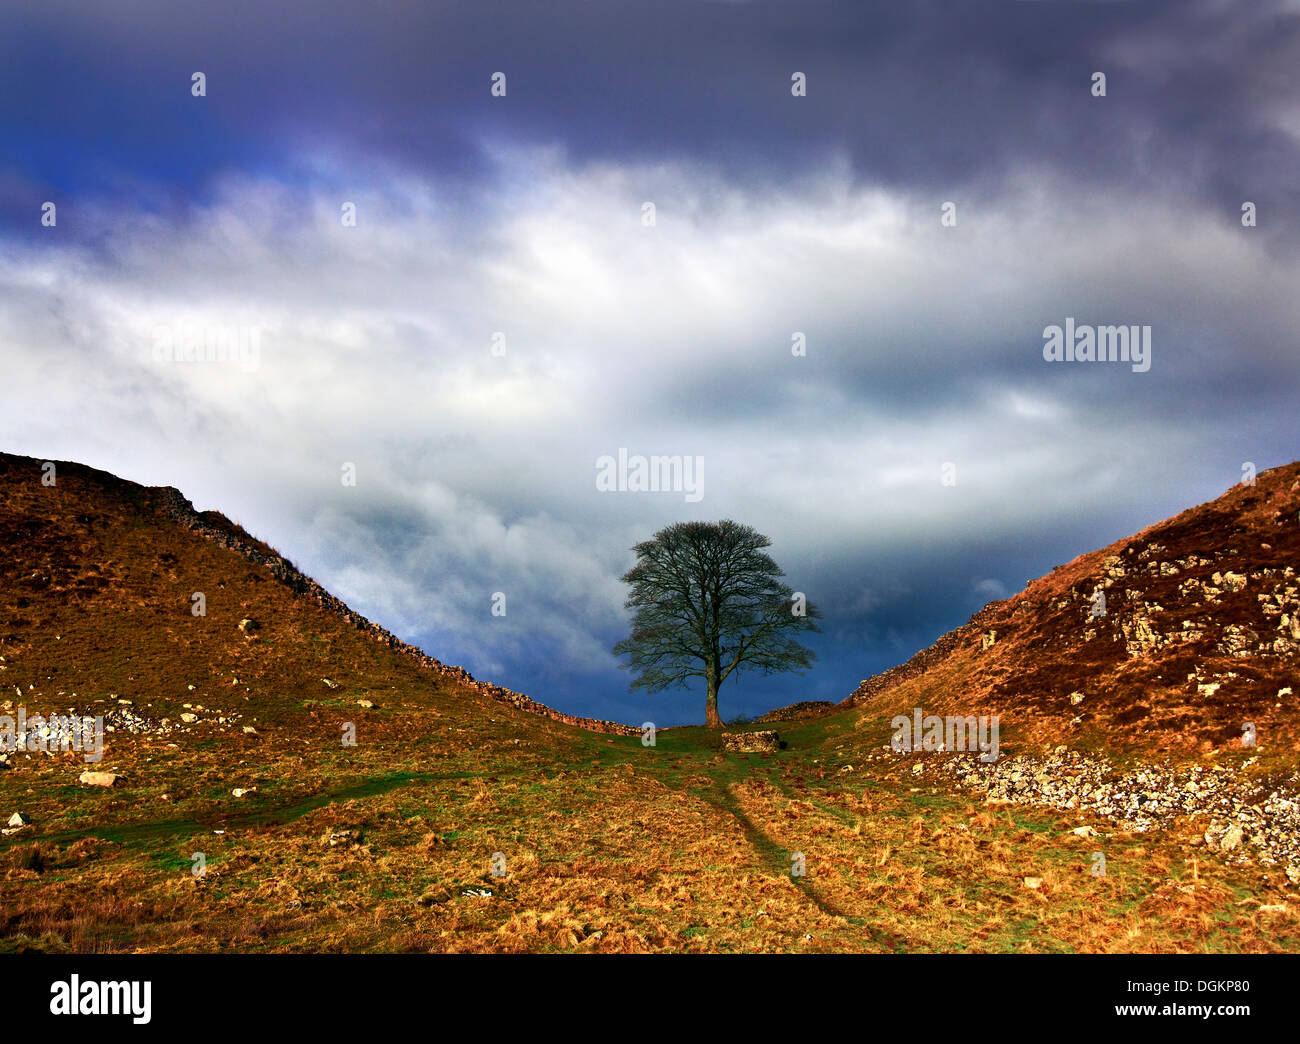 A view of Sycamore Gap in Hadrian's Wall. - Stock Image